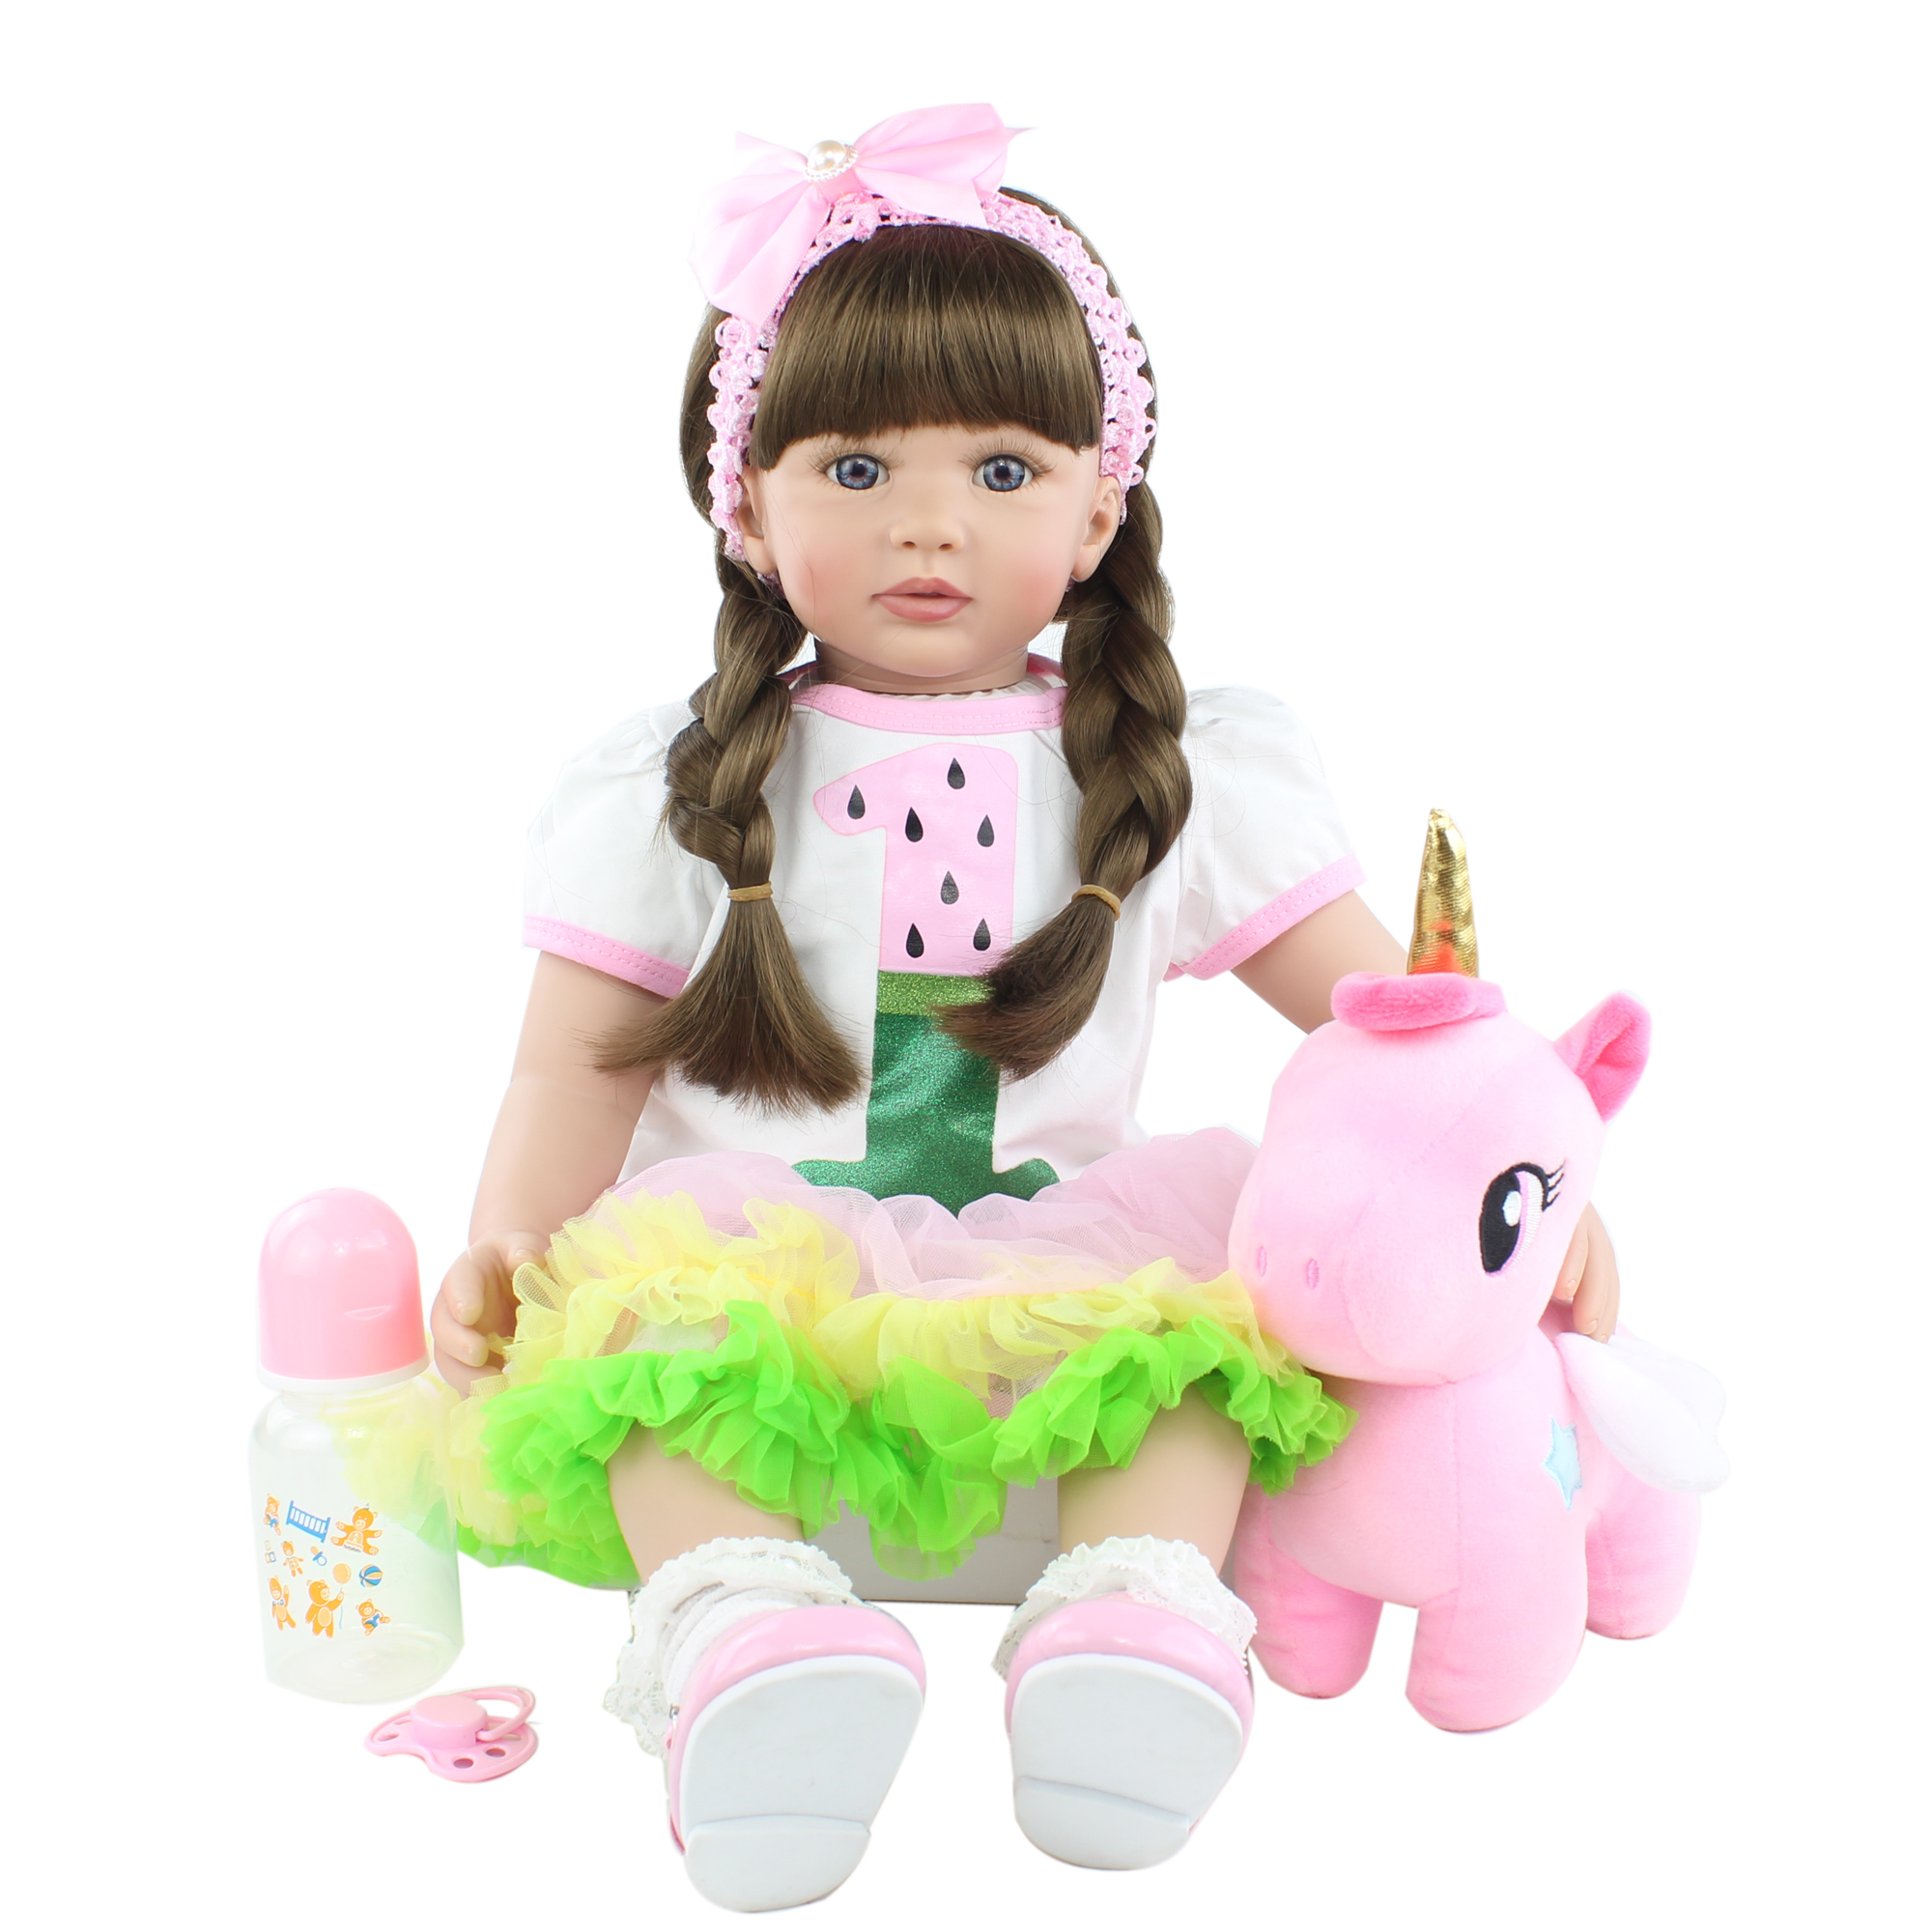 60 CM Soft Silicone Reborn Toddler Doll Toy For Girl Long Hair Princess Baby With Cloth Body Alive Bebe Dress Up Birthday Gift